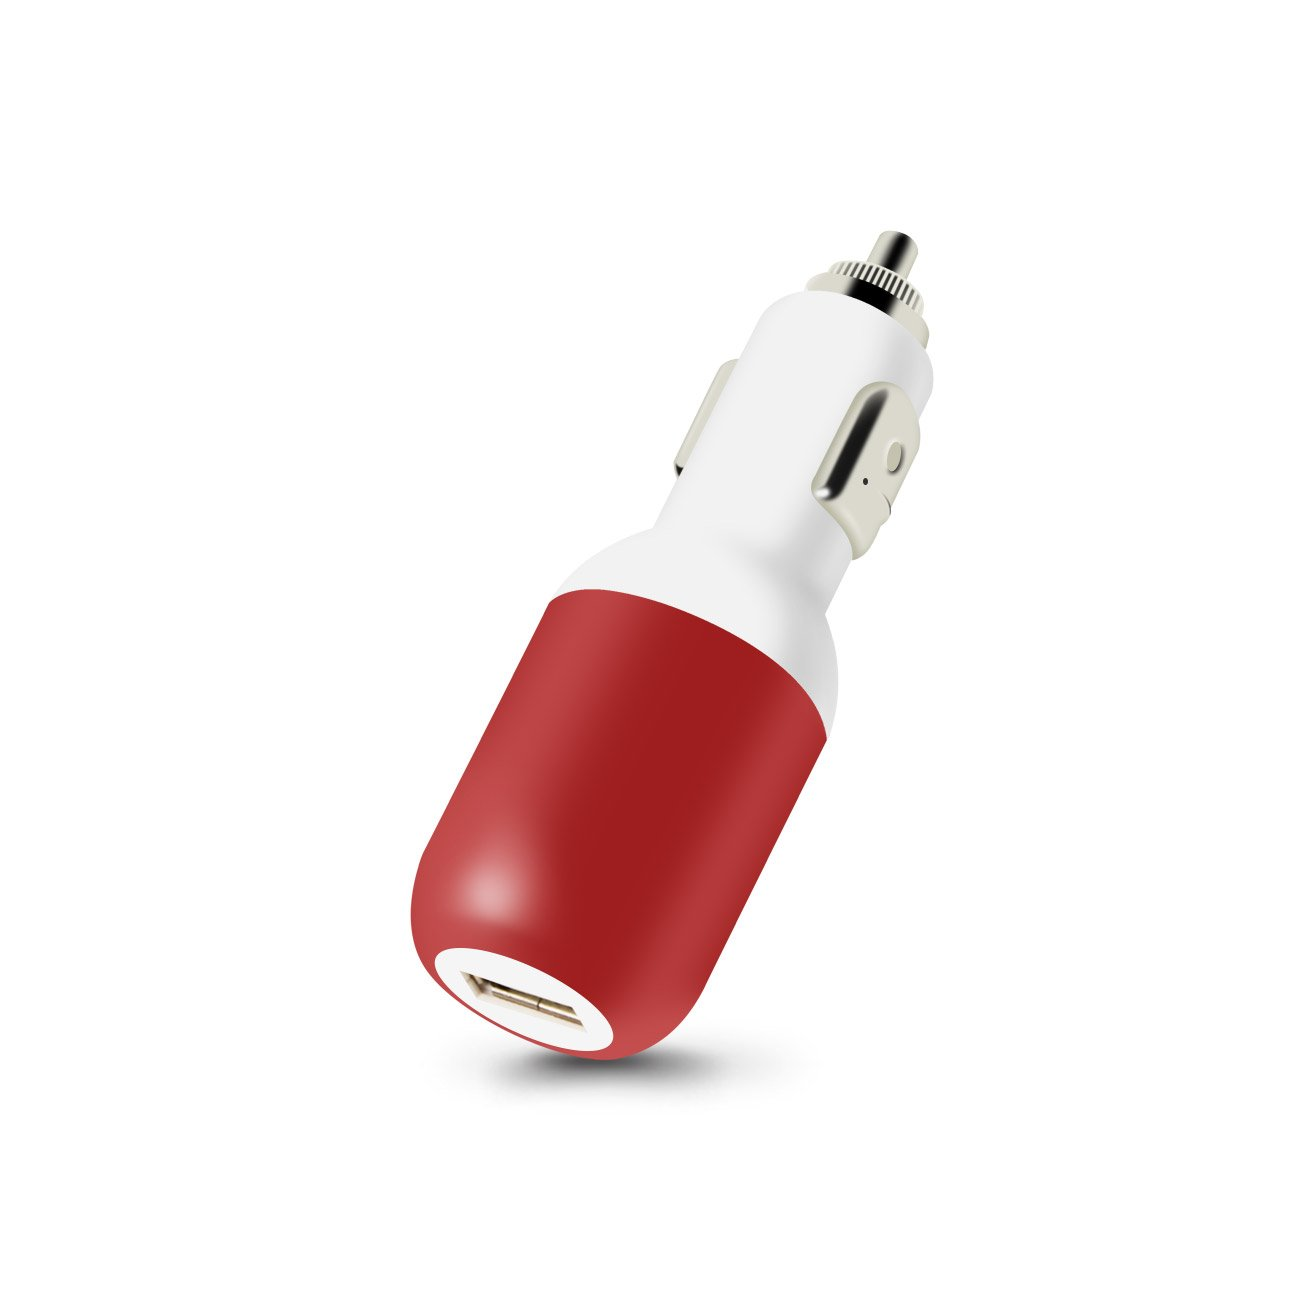 IPHONE 4G 1 AMP USB CAR CHARGER WITH CABLE IN RED